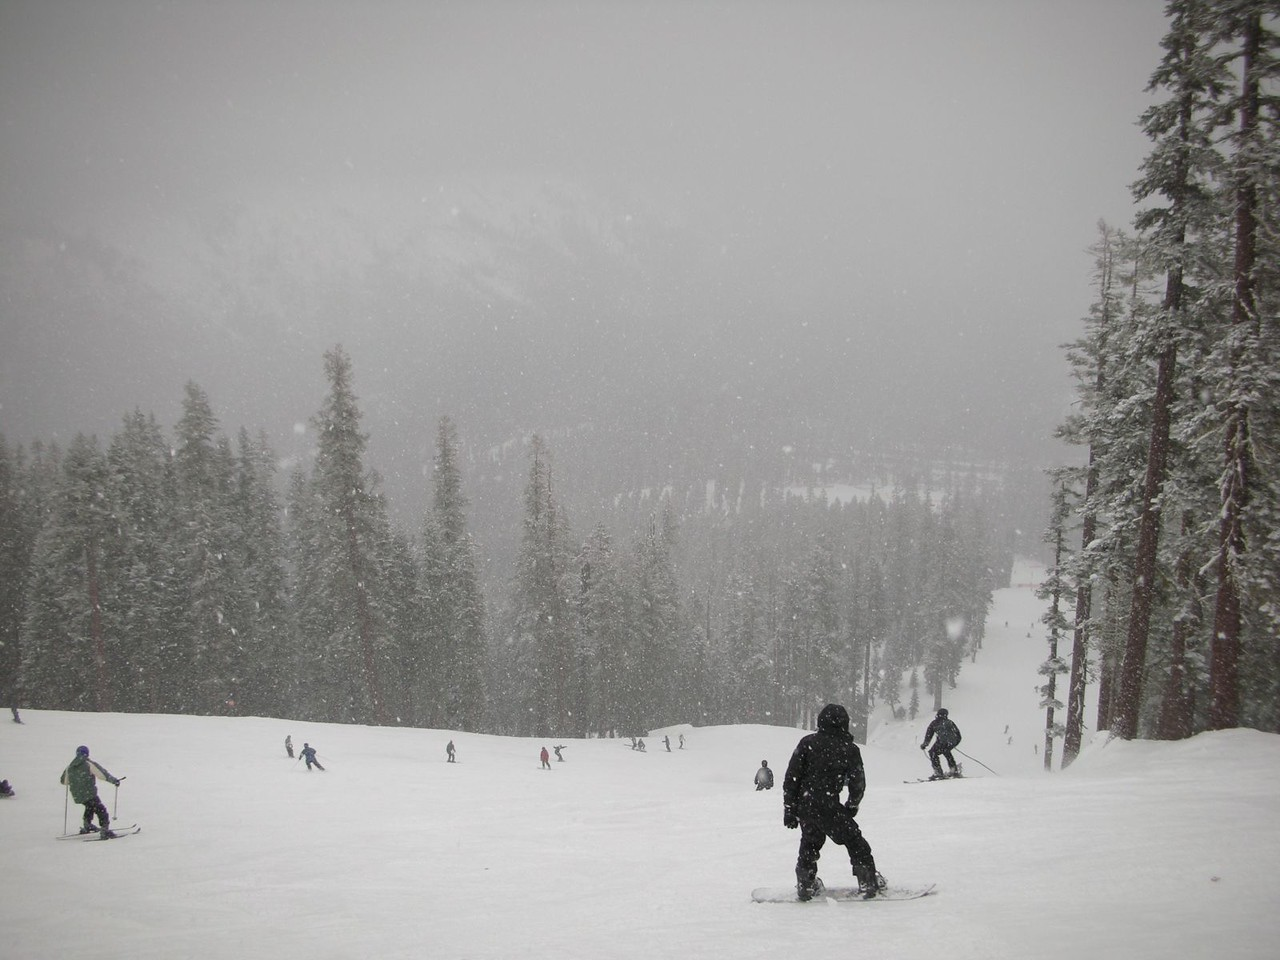 Back up top now - and it's snowing again!  Beautiful!